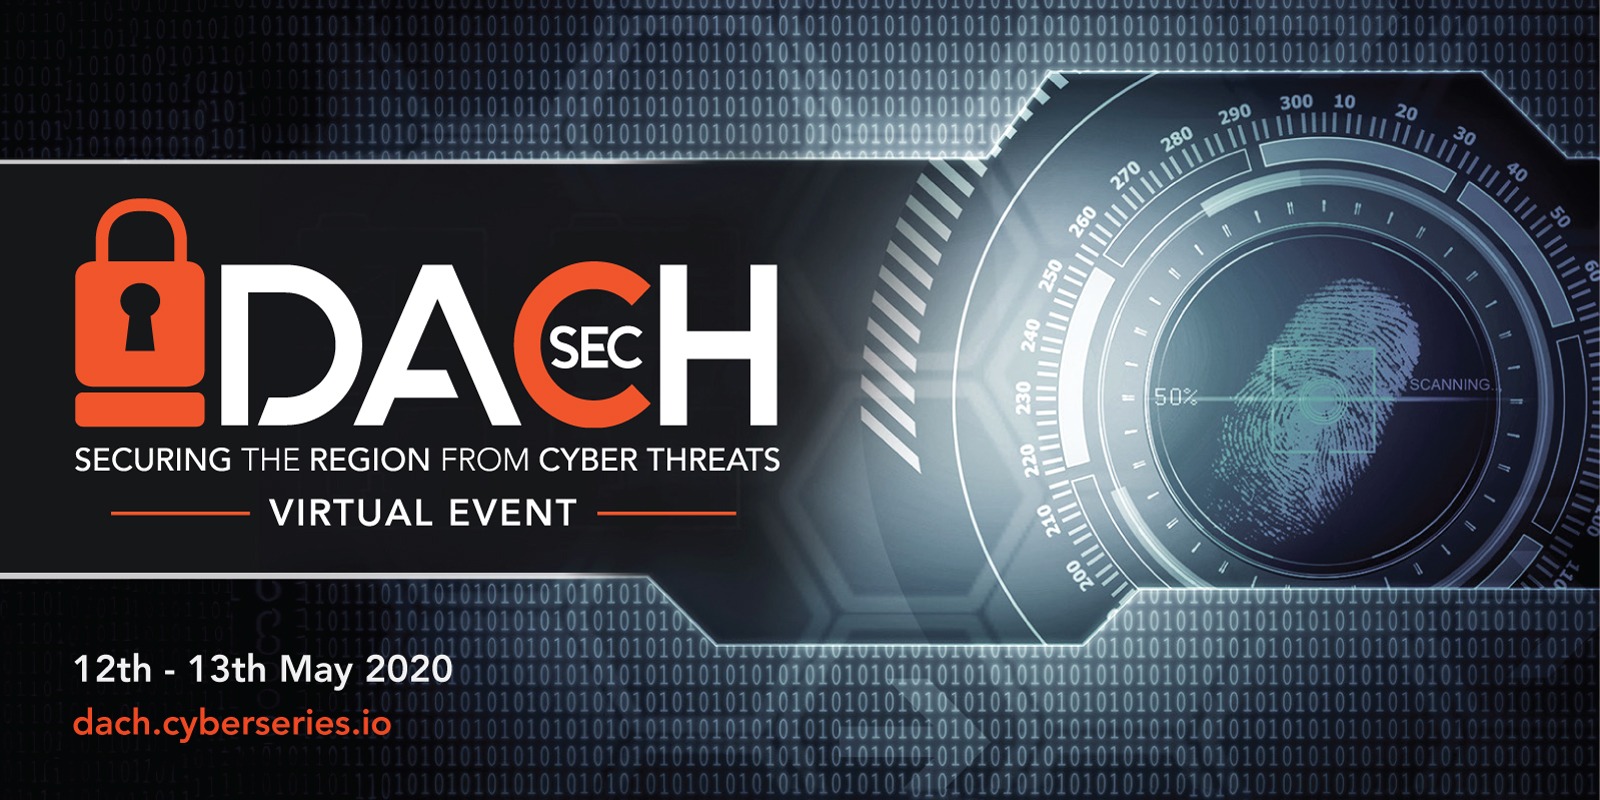 DACHsec: Virtual IT Security Conference organized by Qatalyst Global